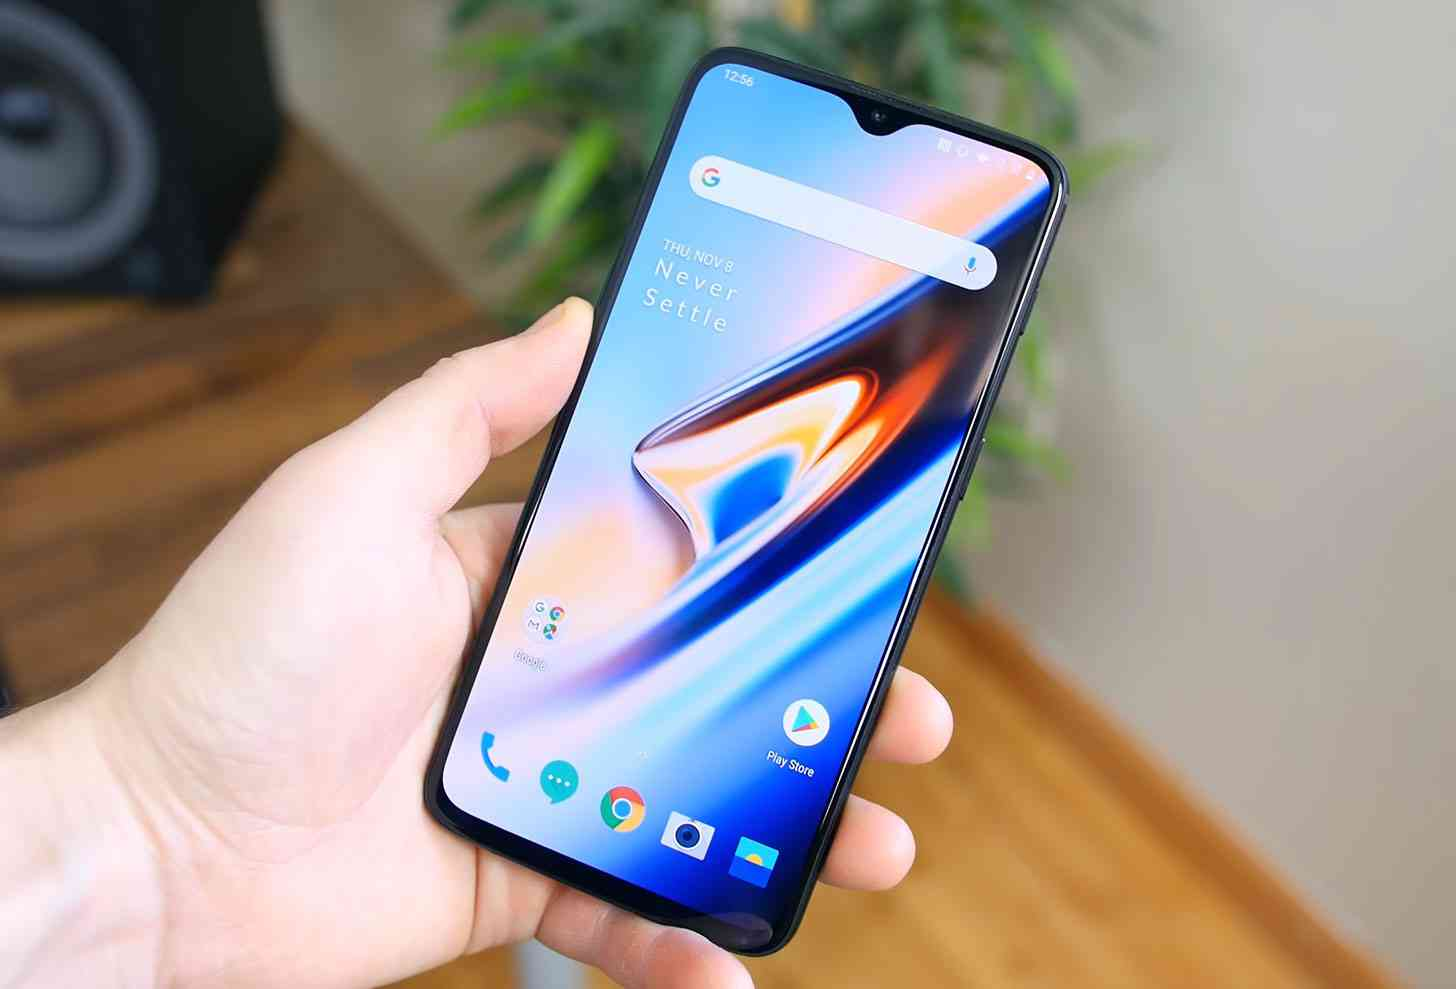 OnePlus 6T hands-on